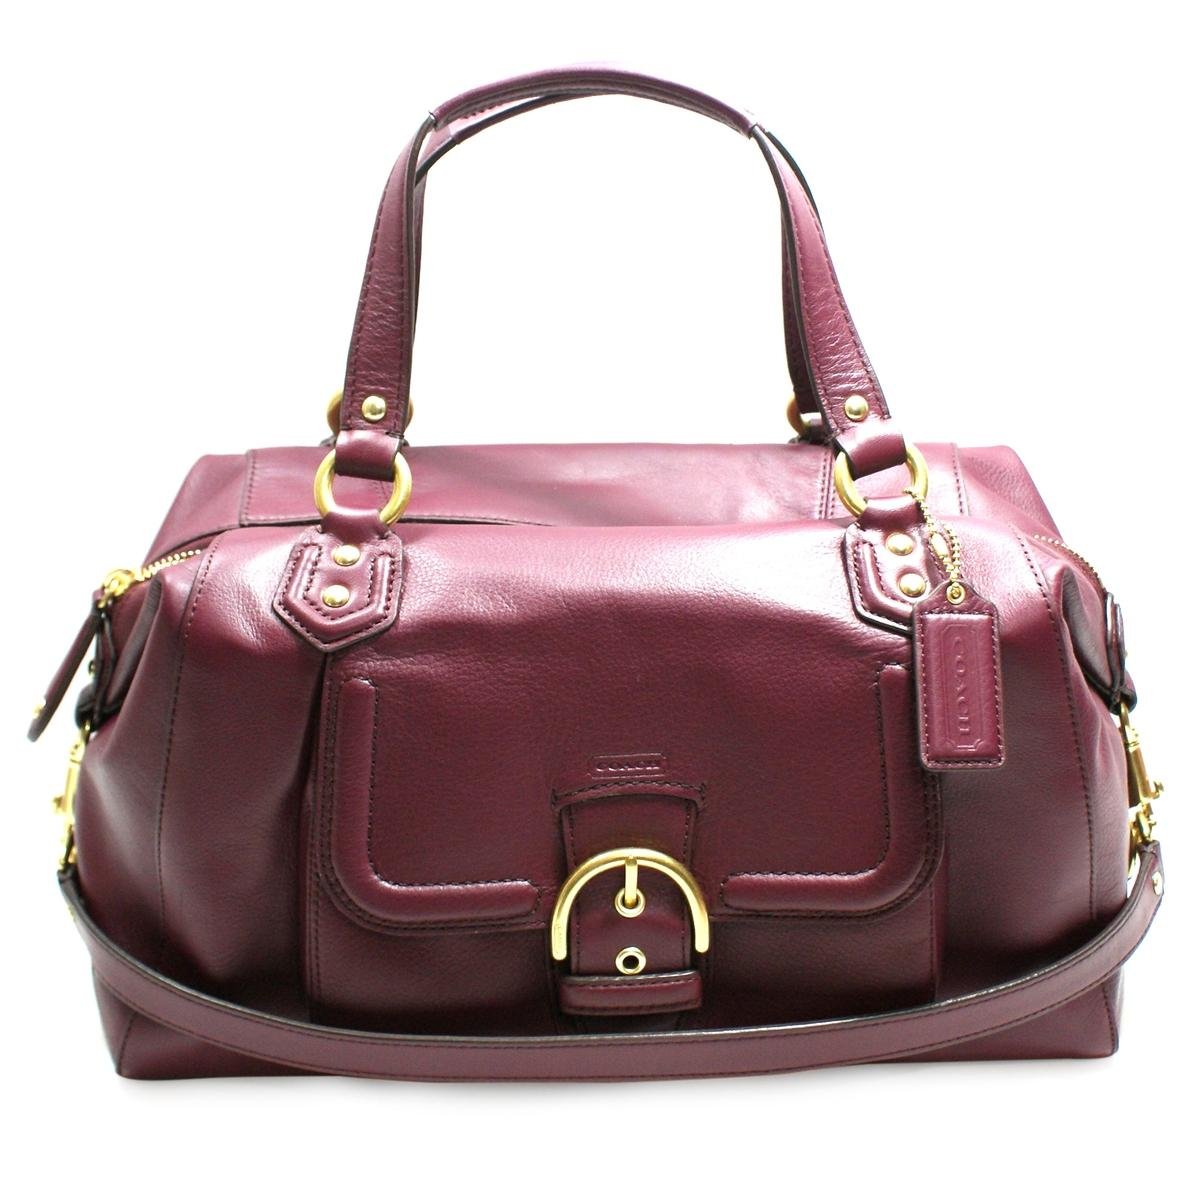 Big Handbag Shop represents a proud tradition of style, quality and durability of all our fashion and leather bags. Our colourful eye-catching range of everyday fashion and lifestyle bags are designed to suit your demanding needs.